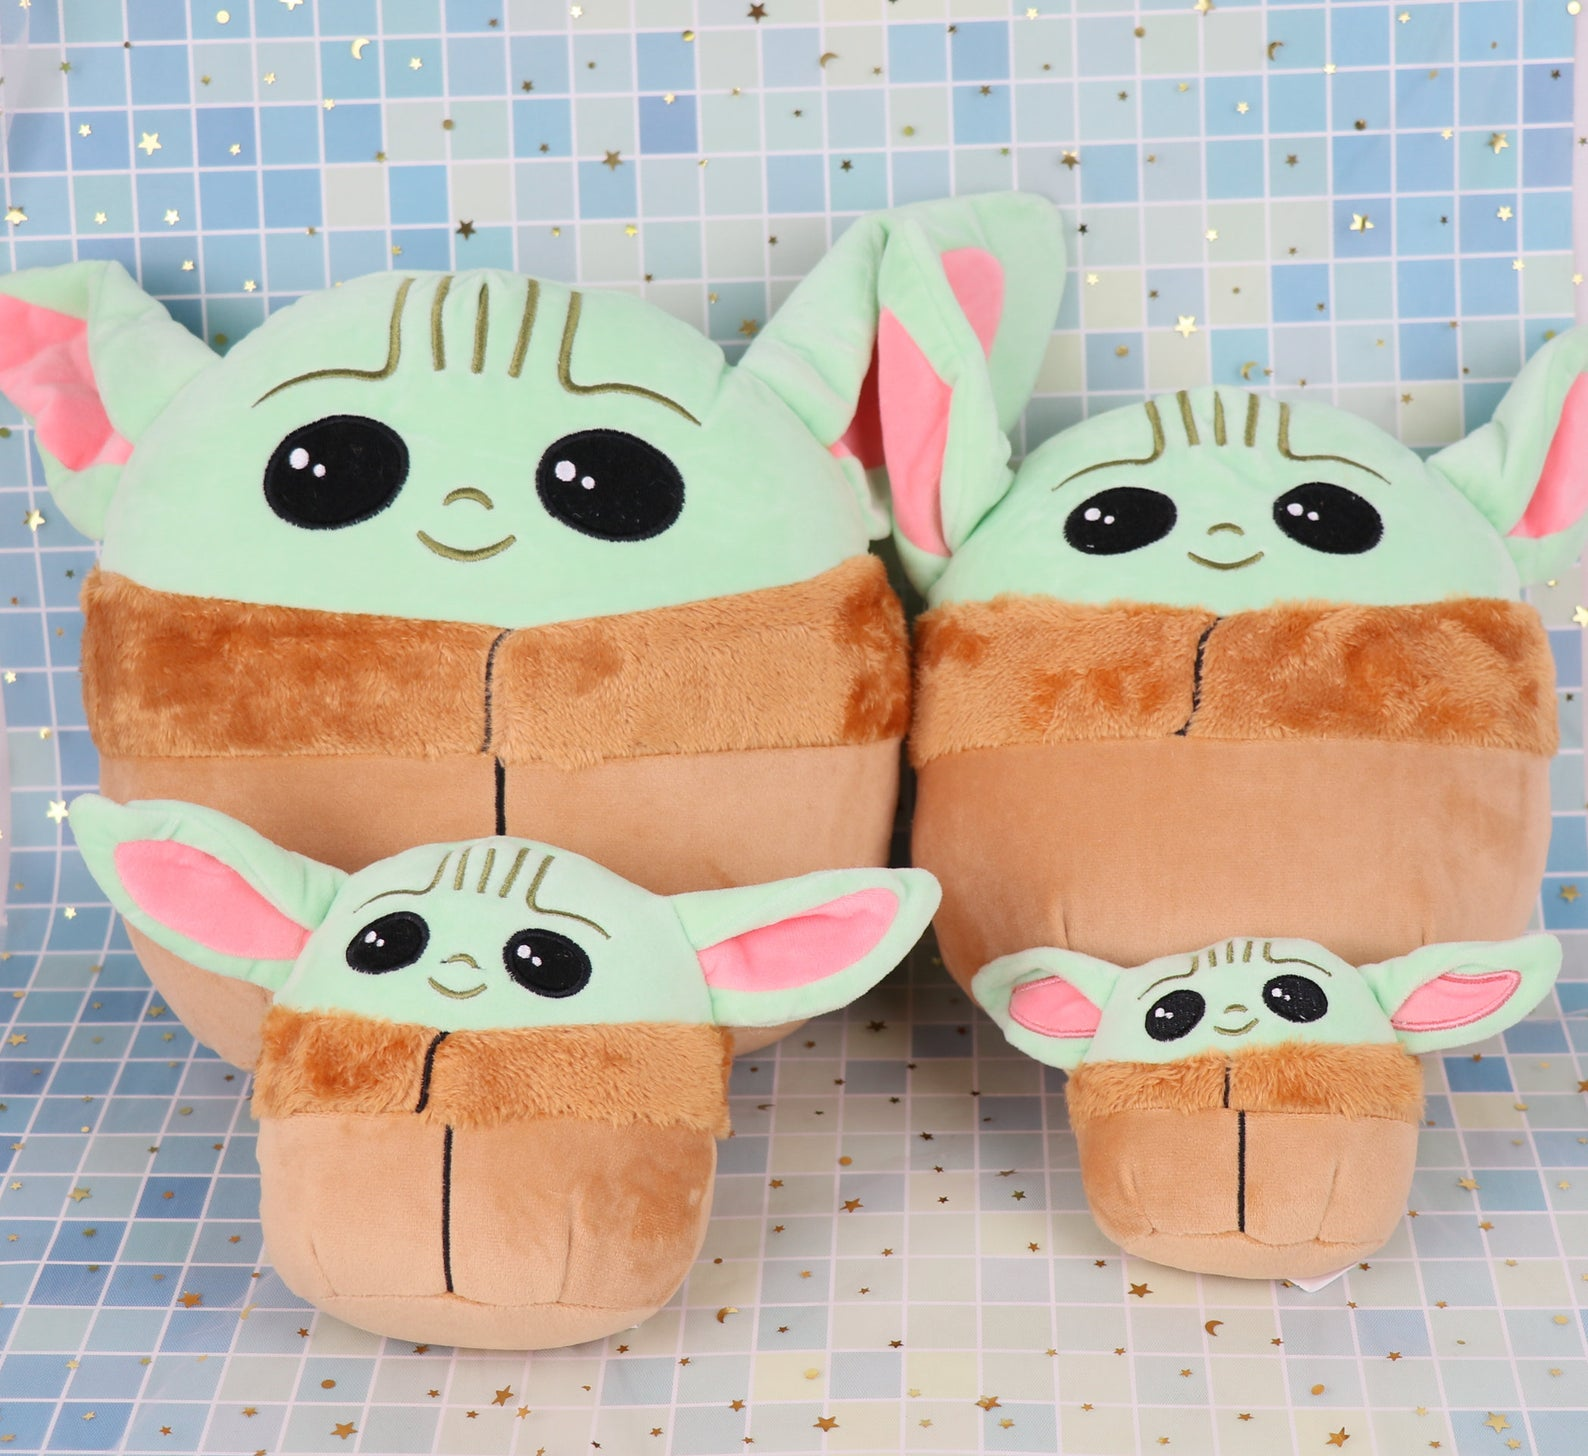 [Image description: four different sizes of a pillow shaped like Baby Yoda]